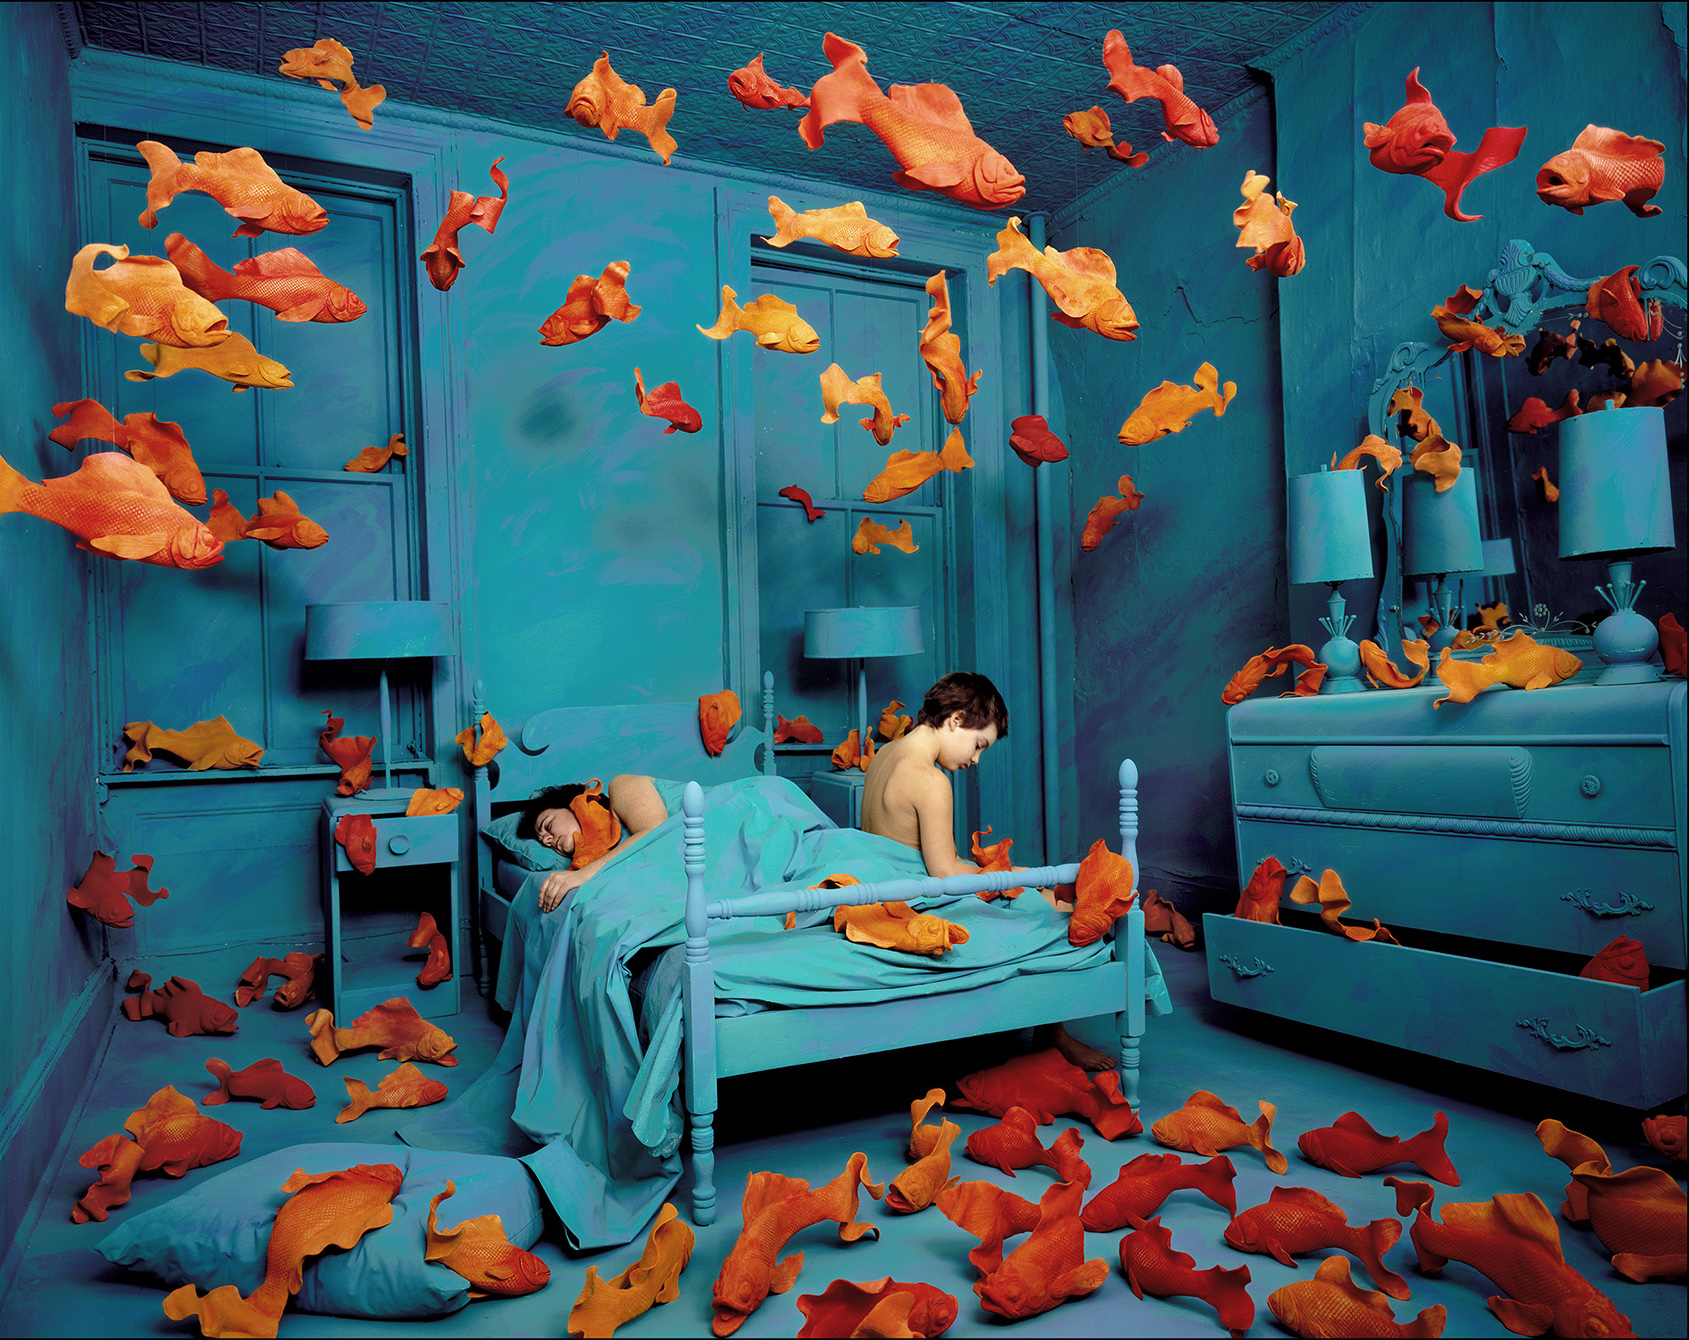 Sandy Skoglund, Revenge of the Goldfish, 1981